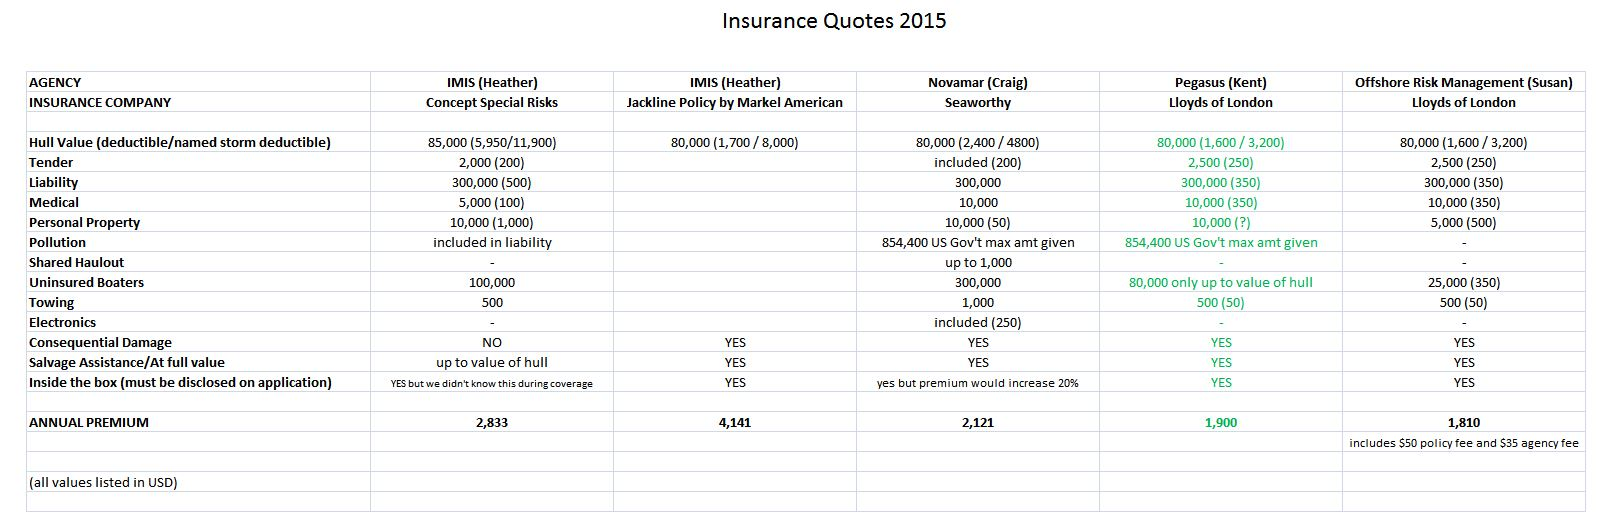 Insurance Quotes 2015